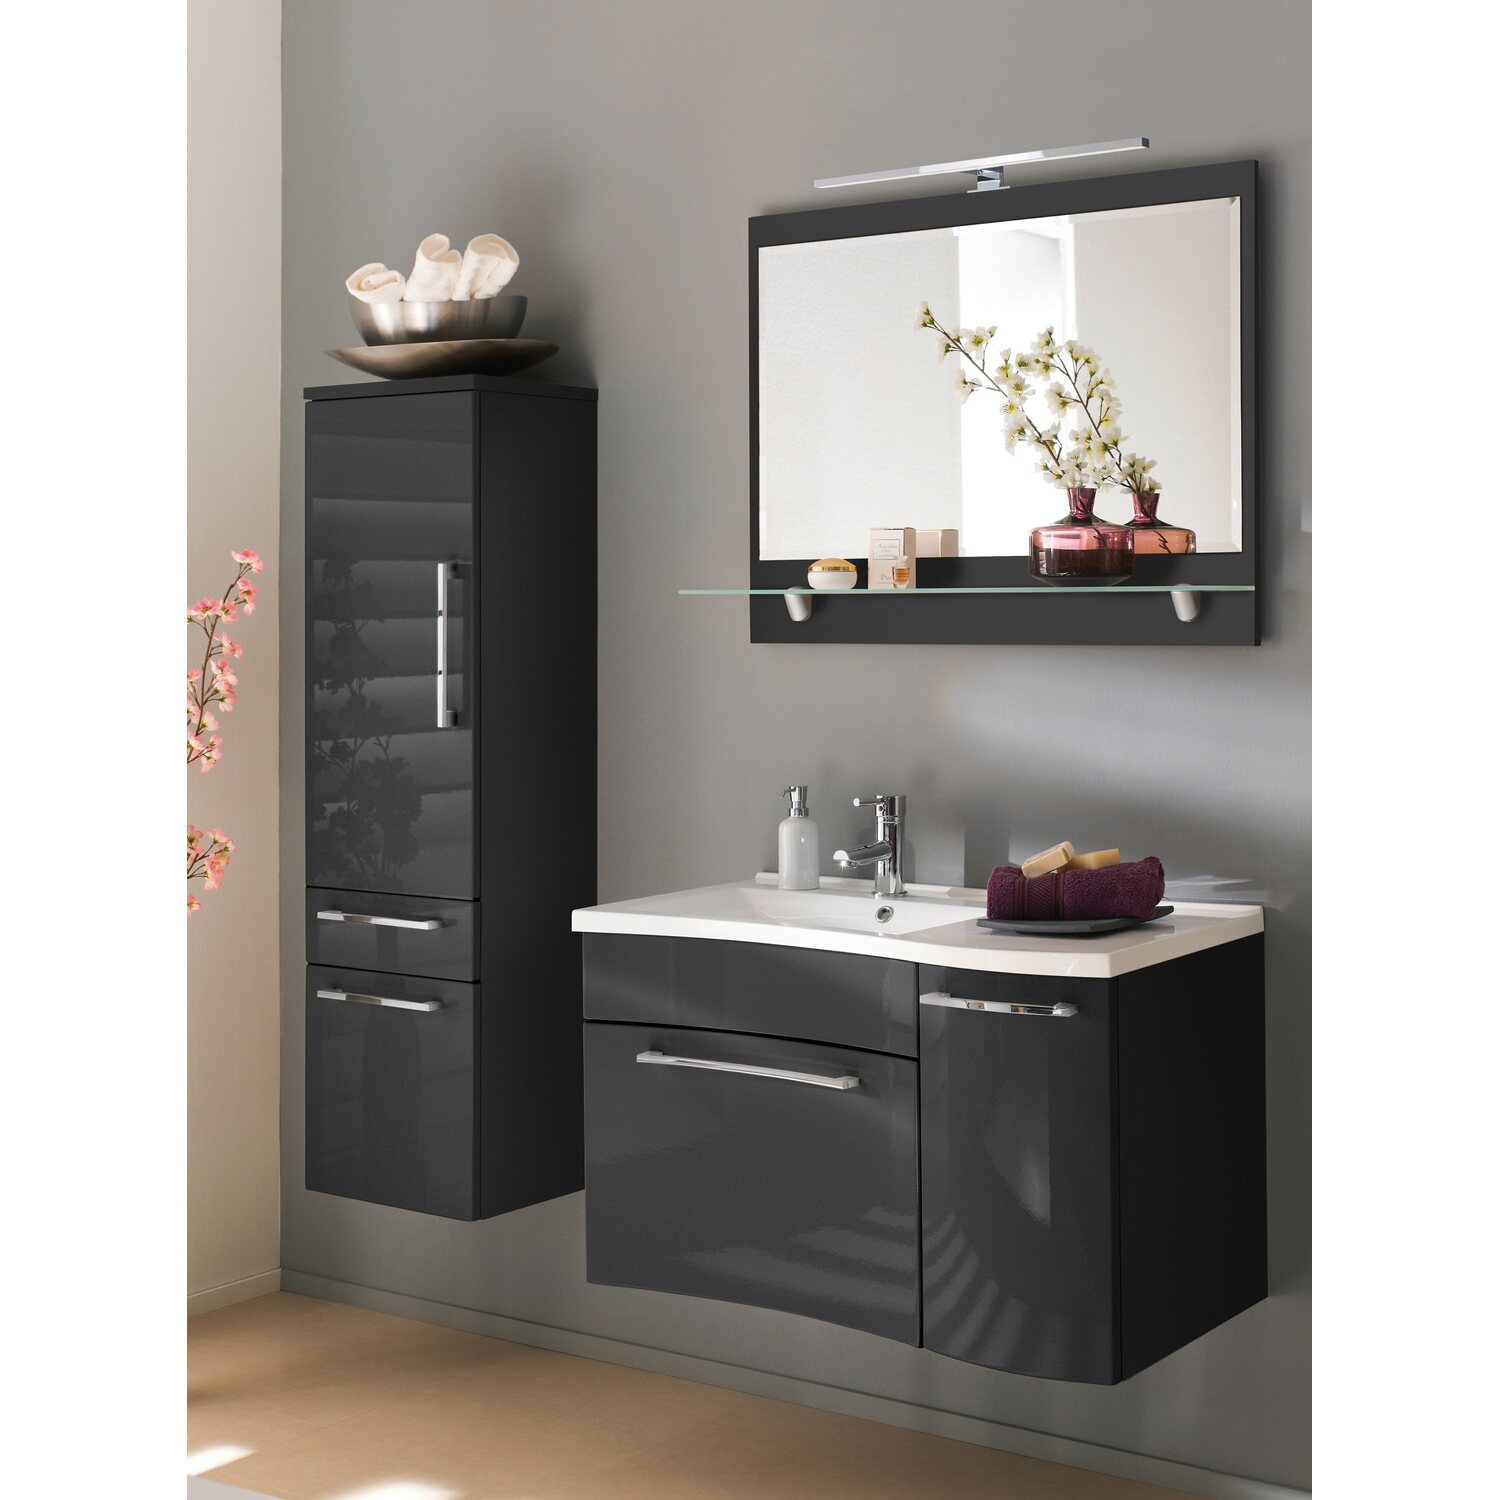 posseik badm bel set laonda anthrazit 4 teilig eek a. Black Bedroom Furniture Sets. Home Design Ideas